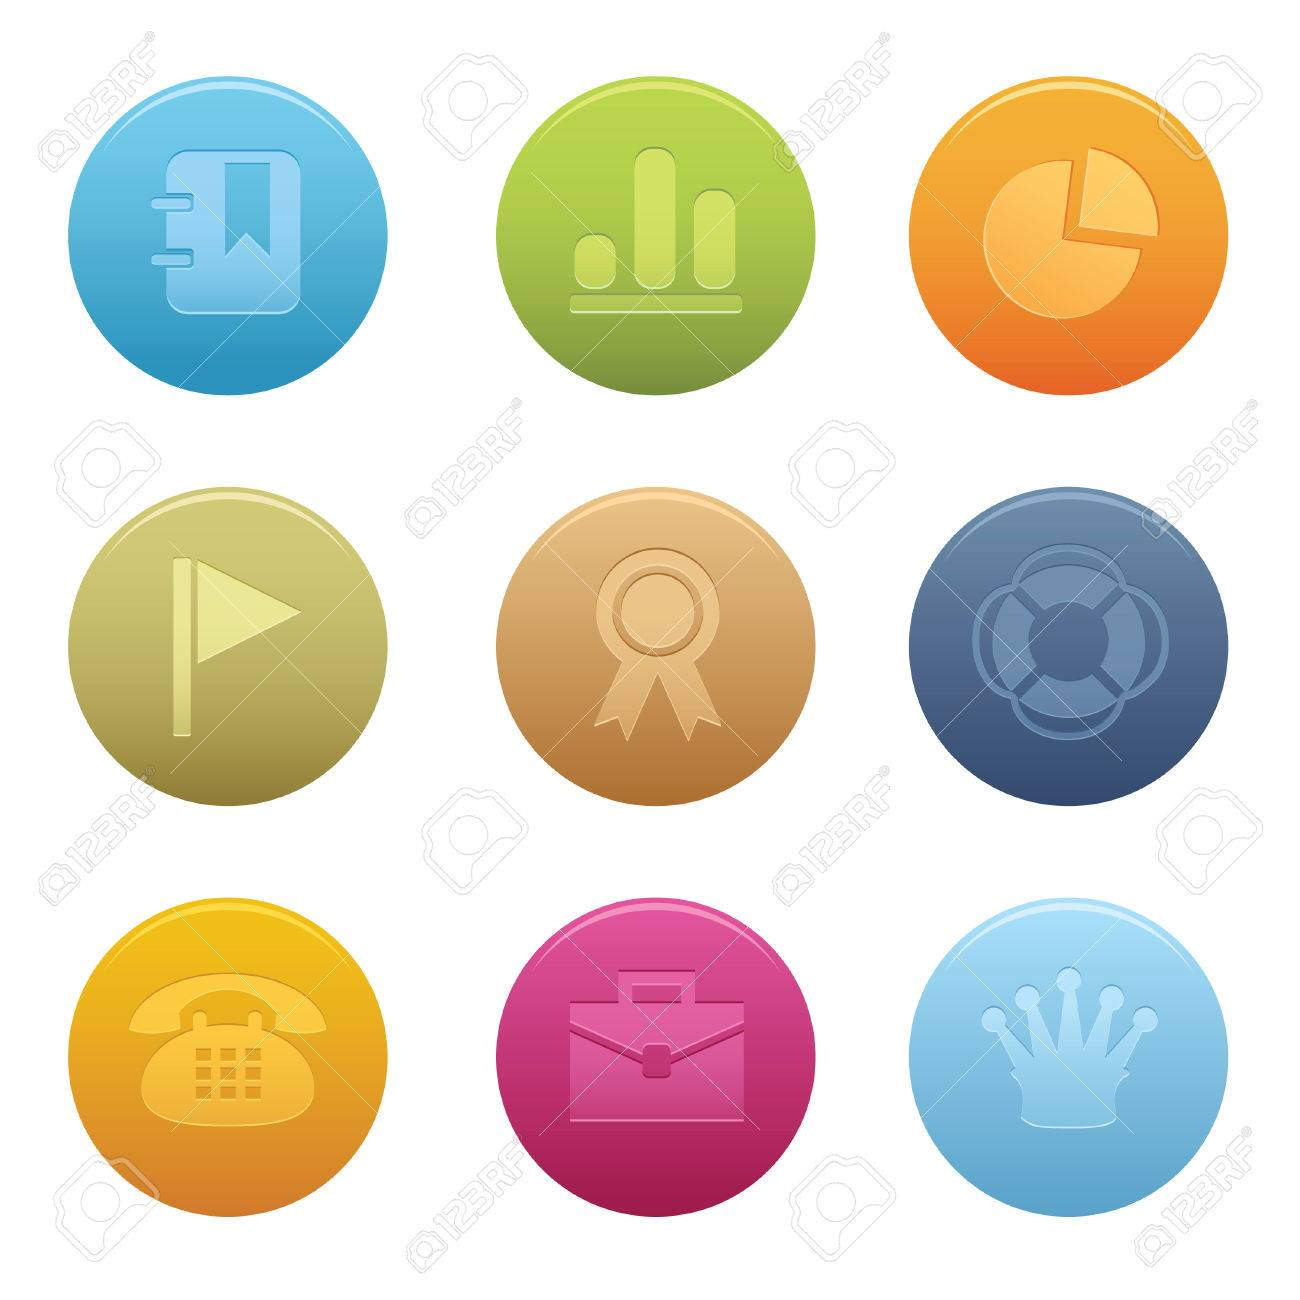 Colors for professional website - 04 Circle Office Icons Professional Set For Your Website Application Or Presentation The